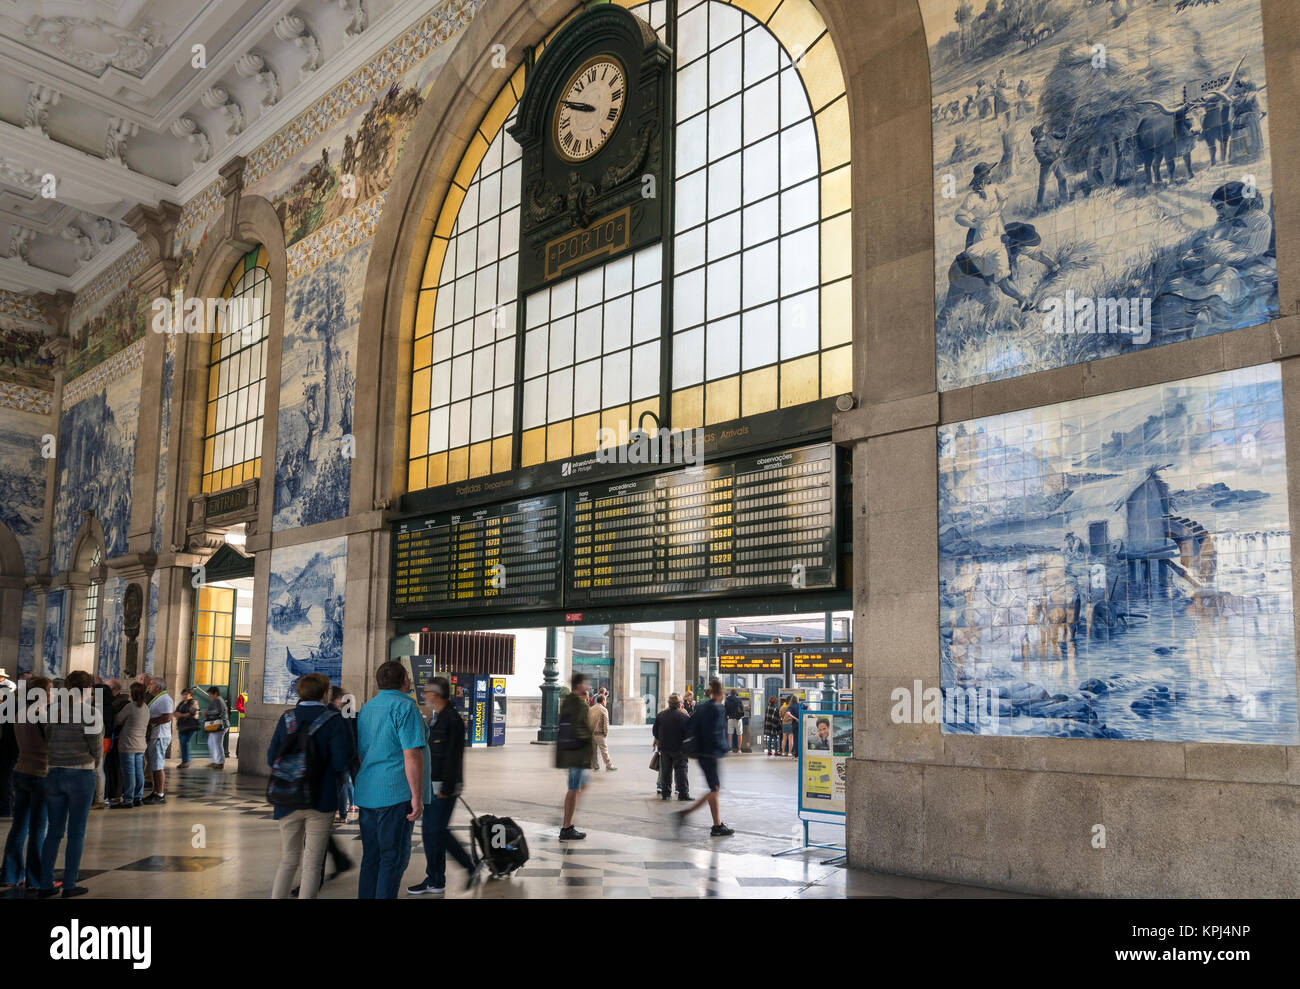 Traditional dececorated tiles ,azulejos, in Sao Bento railway station at Porto, Portugal - Stock Image